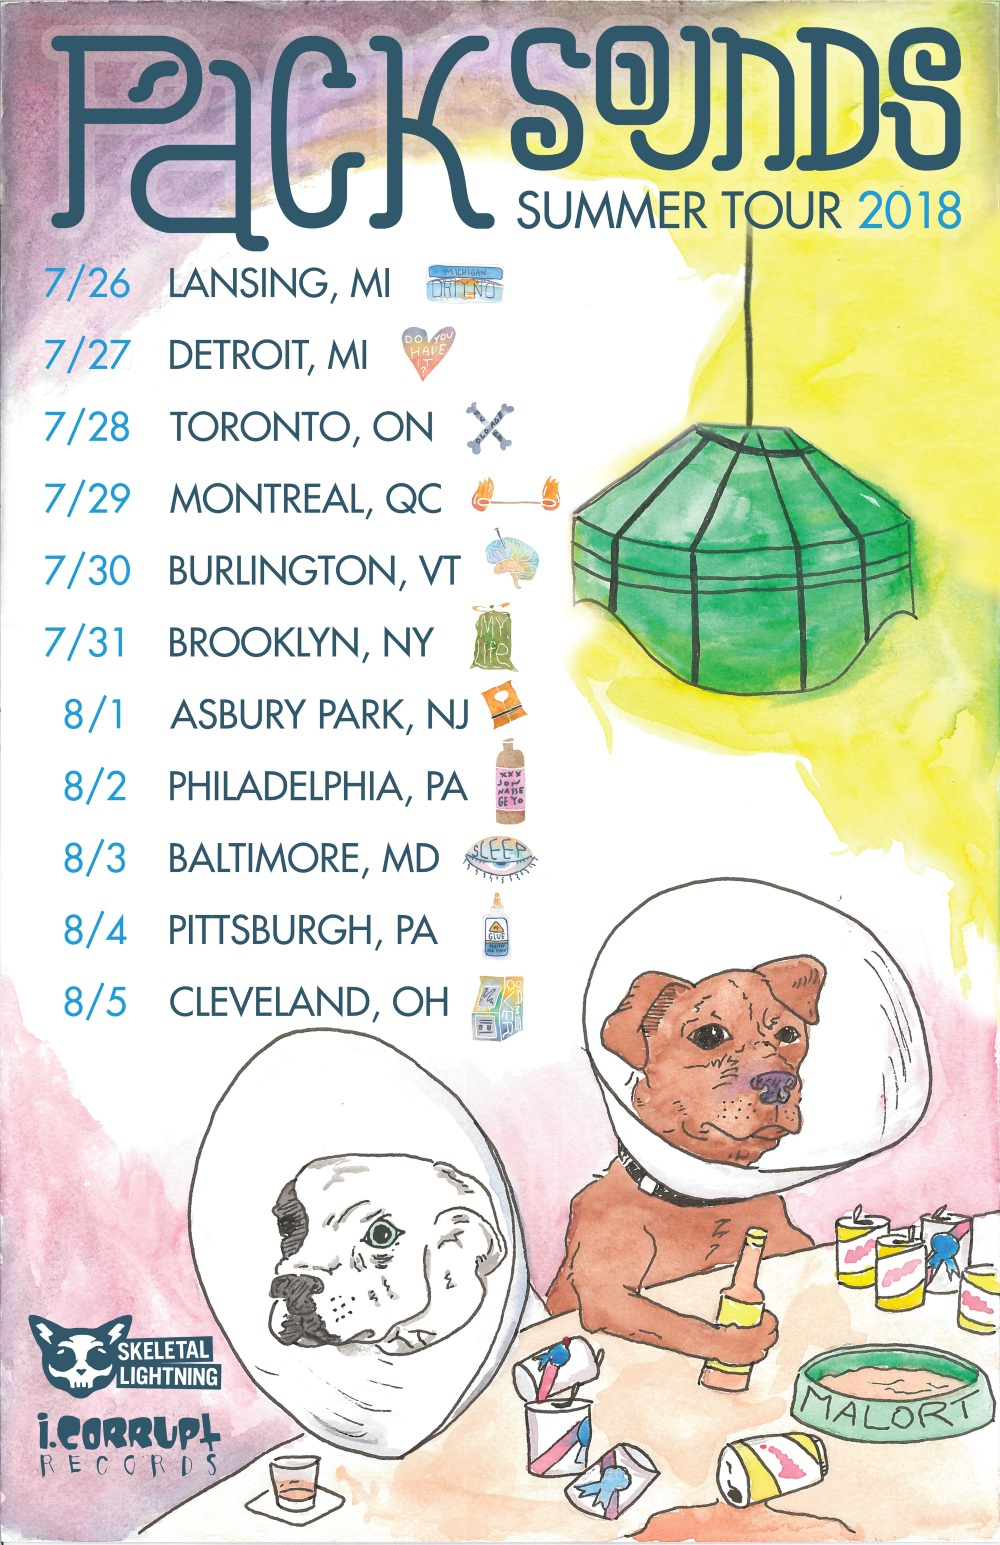 PACK SOUNDS tour poster, by Nick Yonce